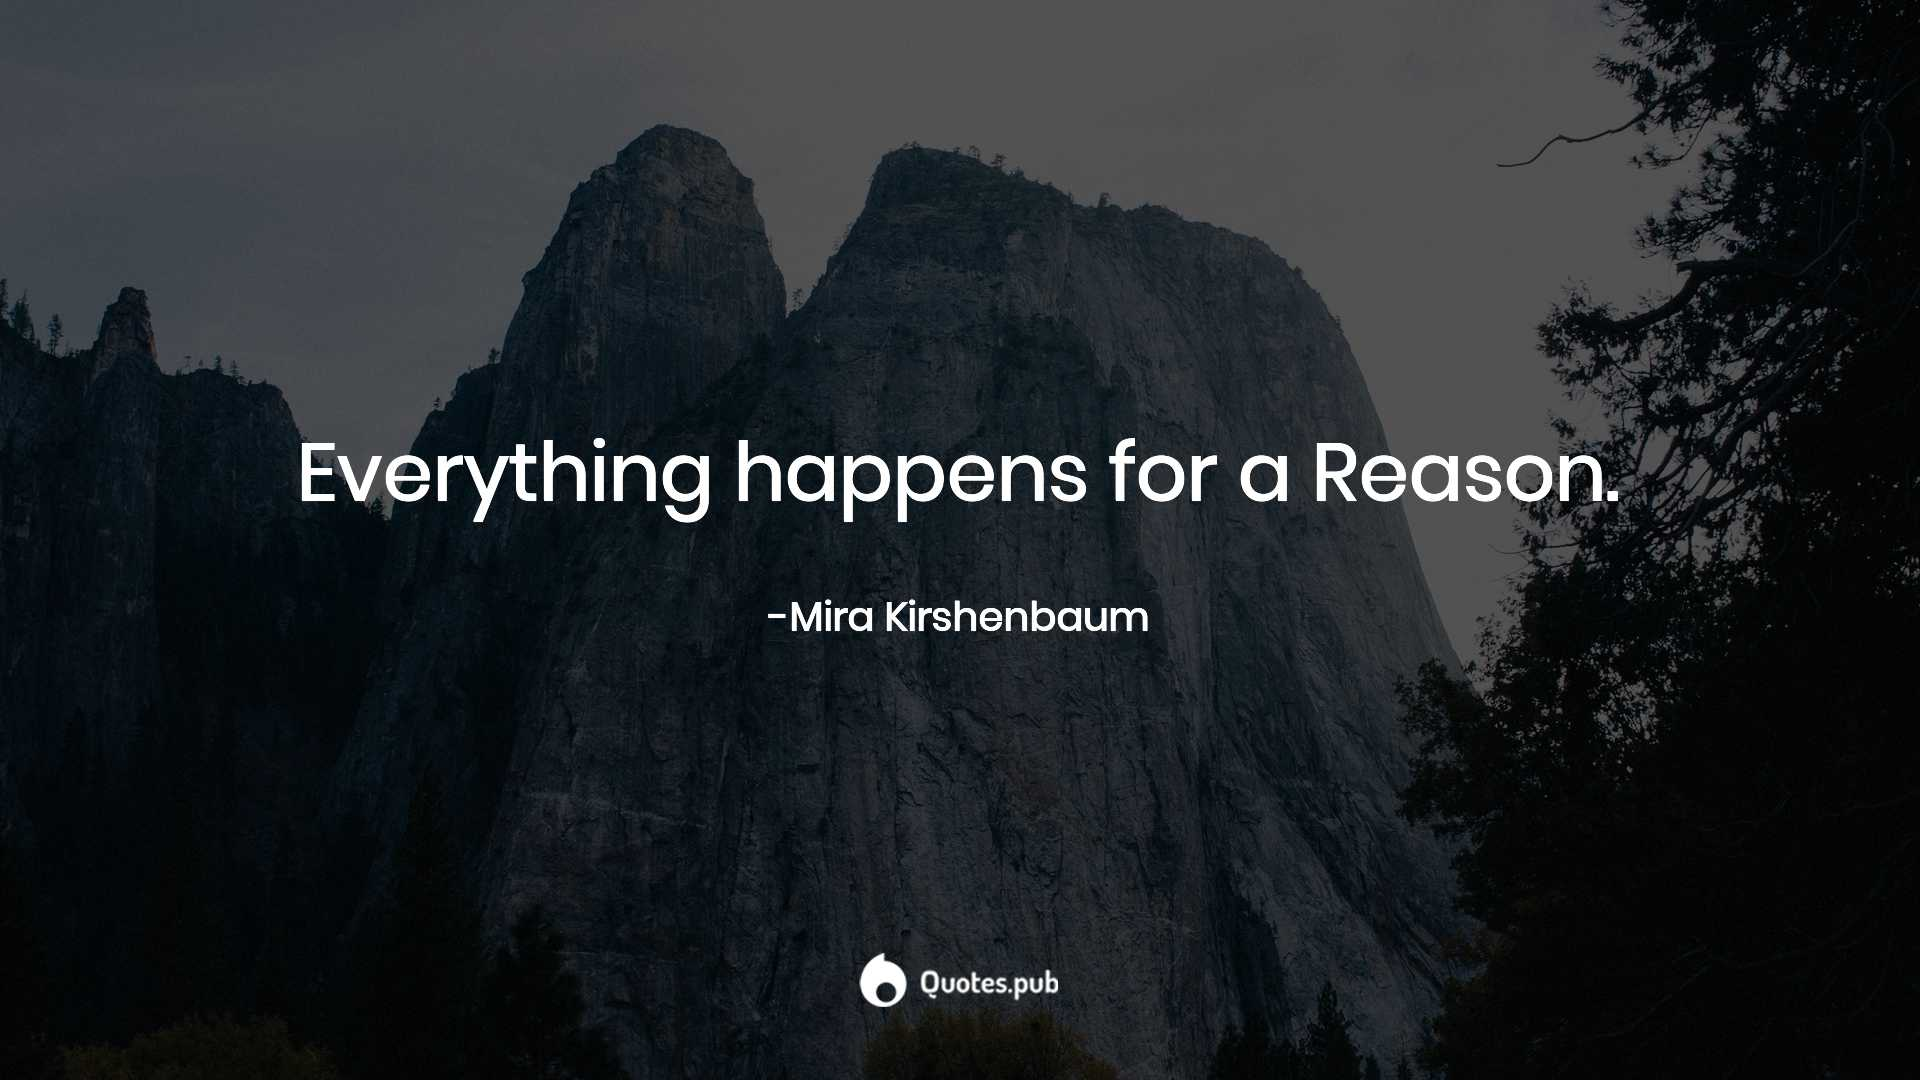 Everything Happens For A Reason Mira Kirshenbaum Quotes Pub